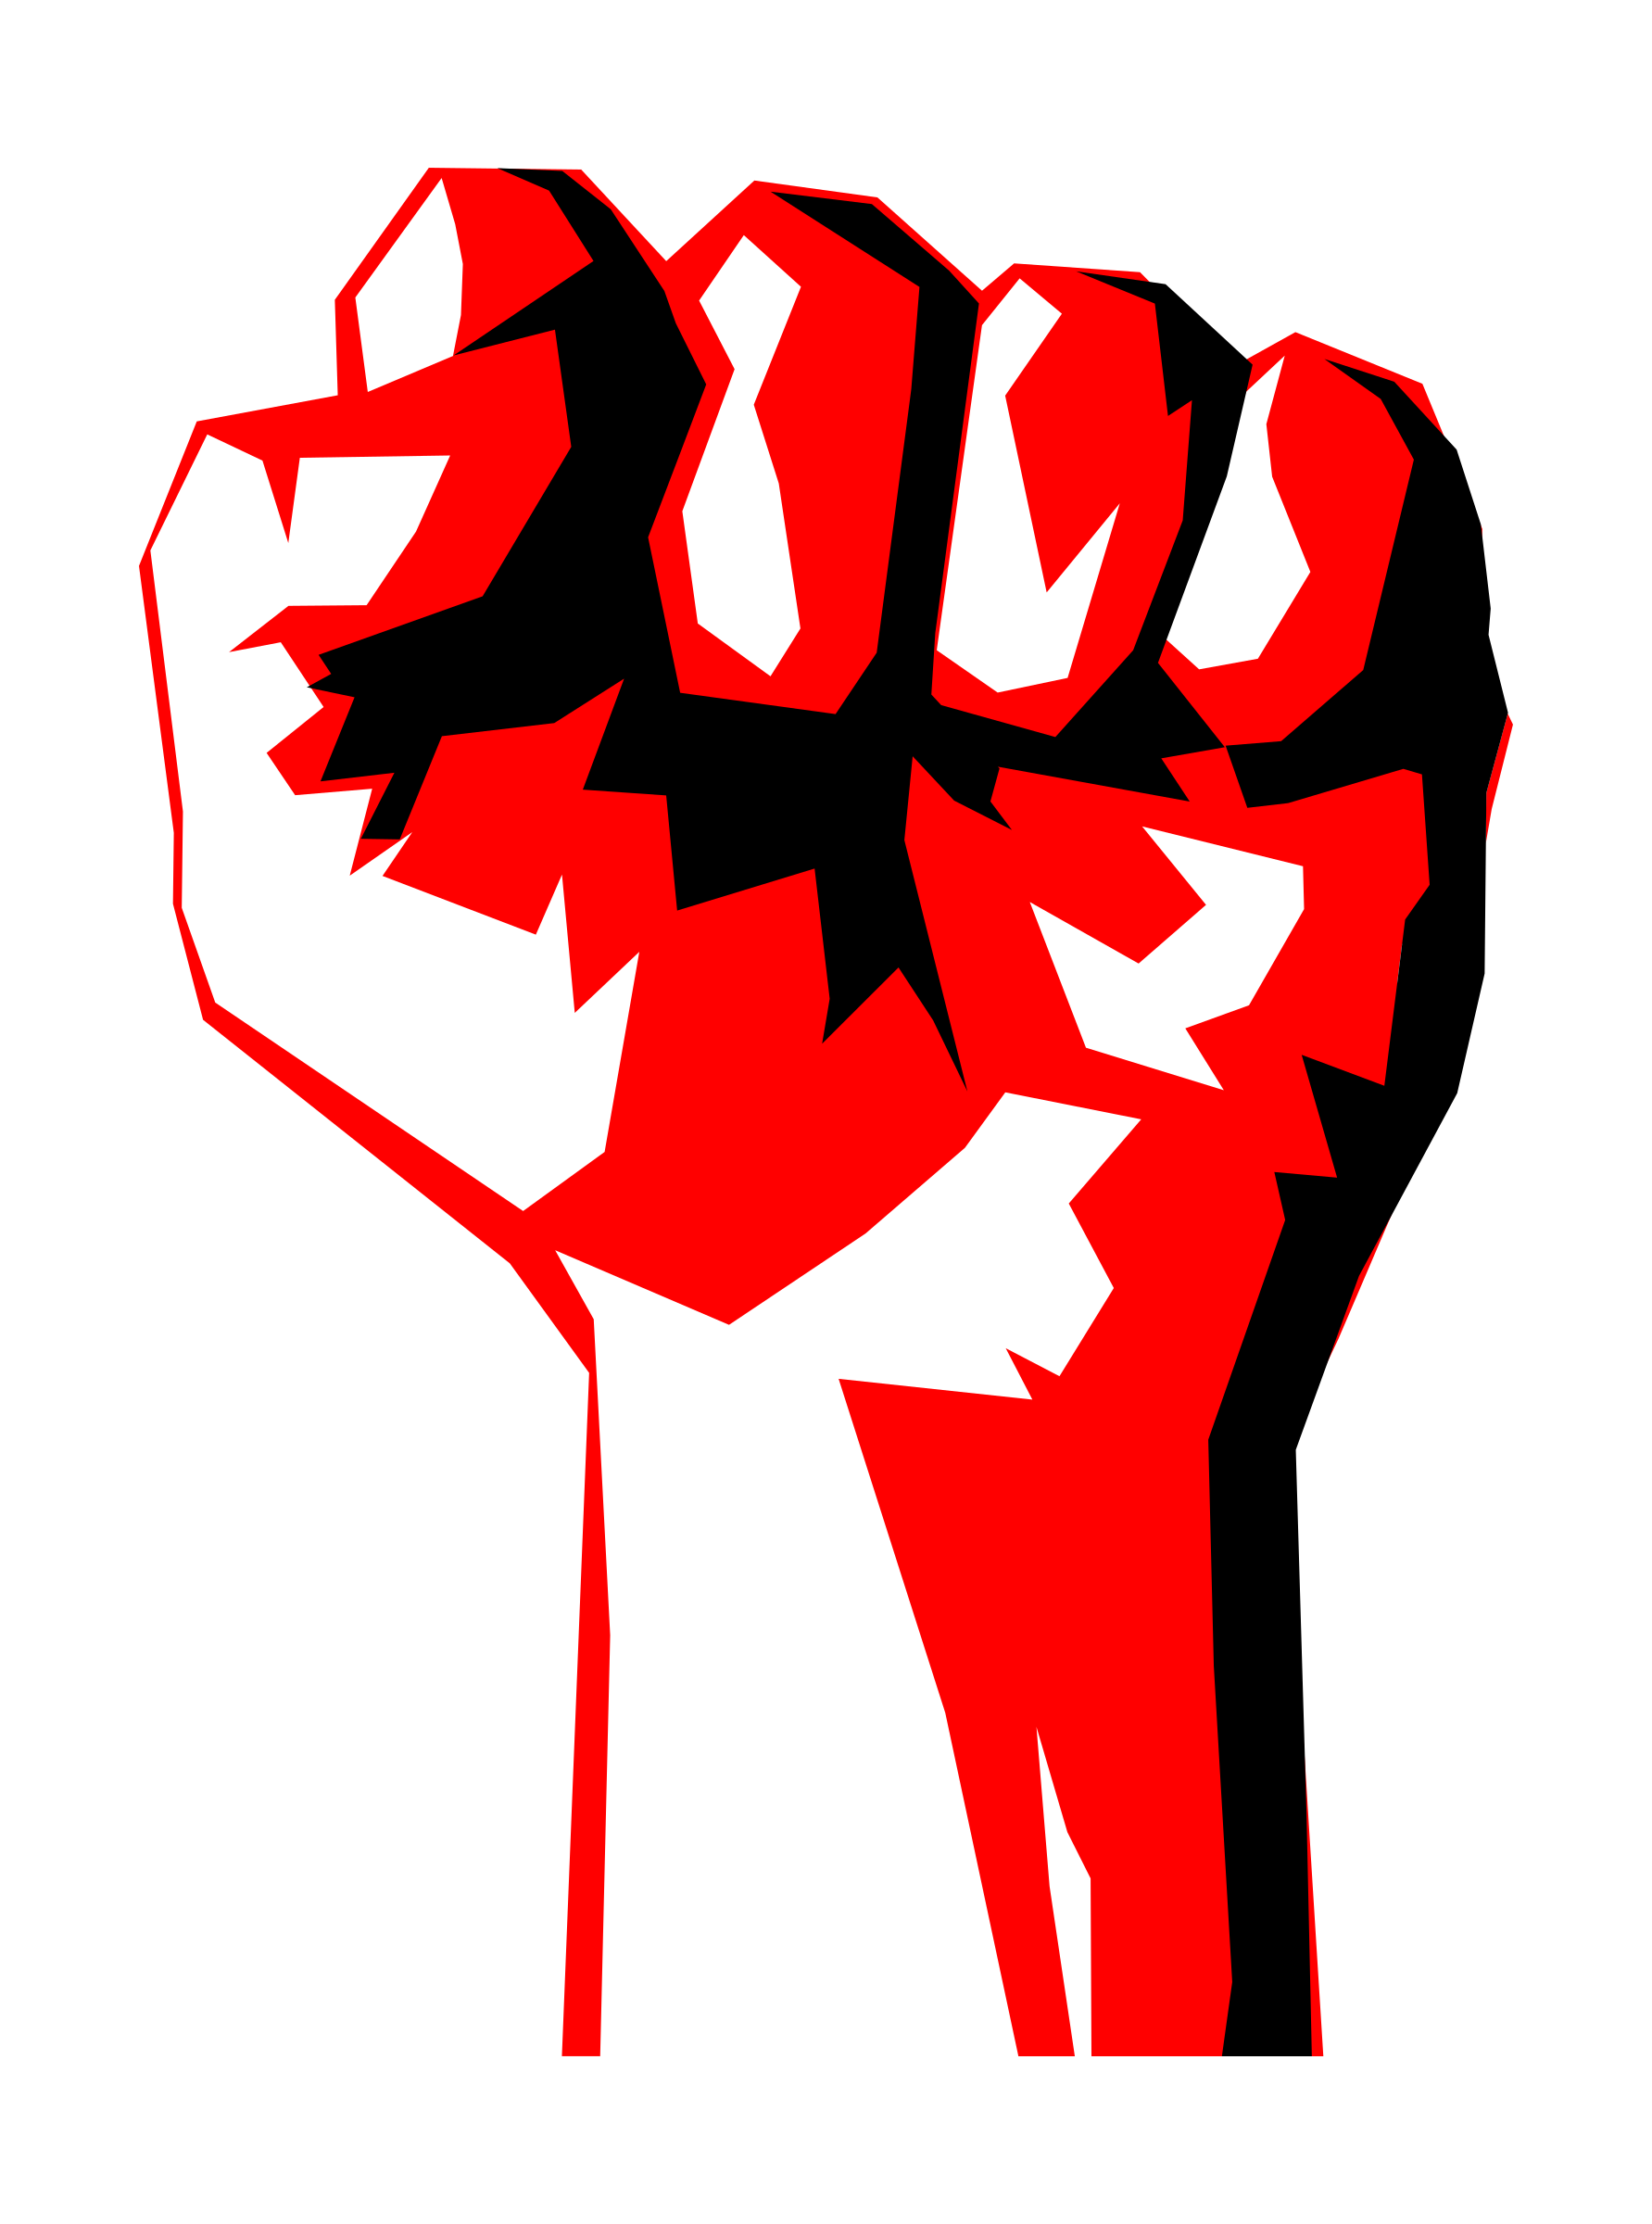 Fist clipart unity. Worker by revolution on